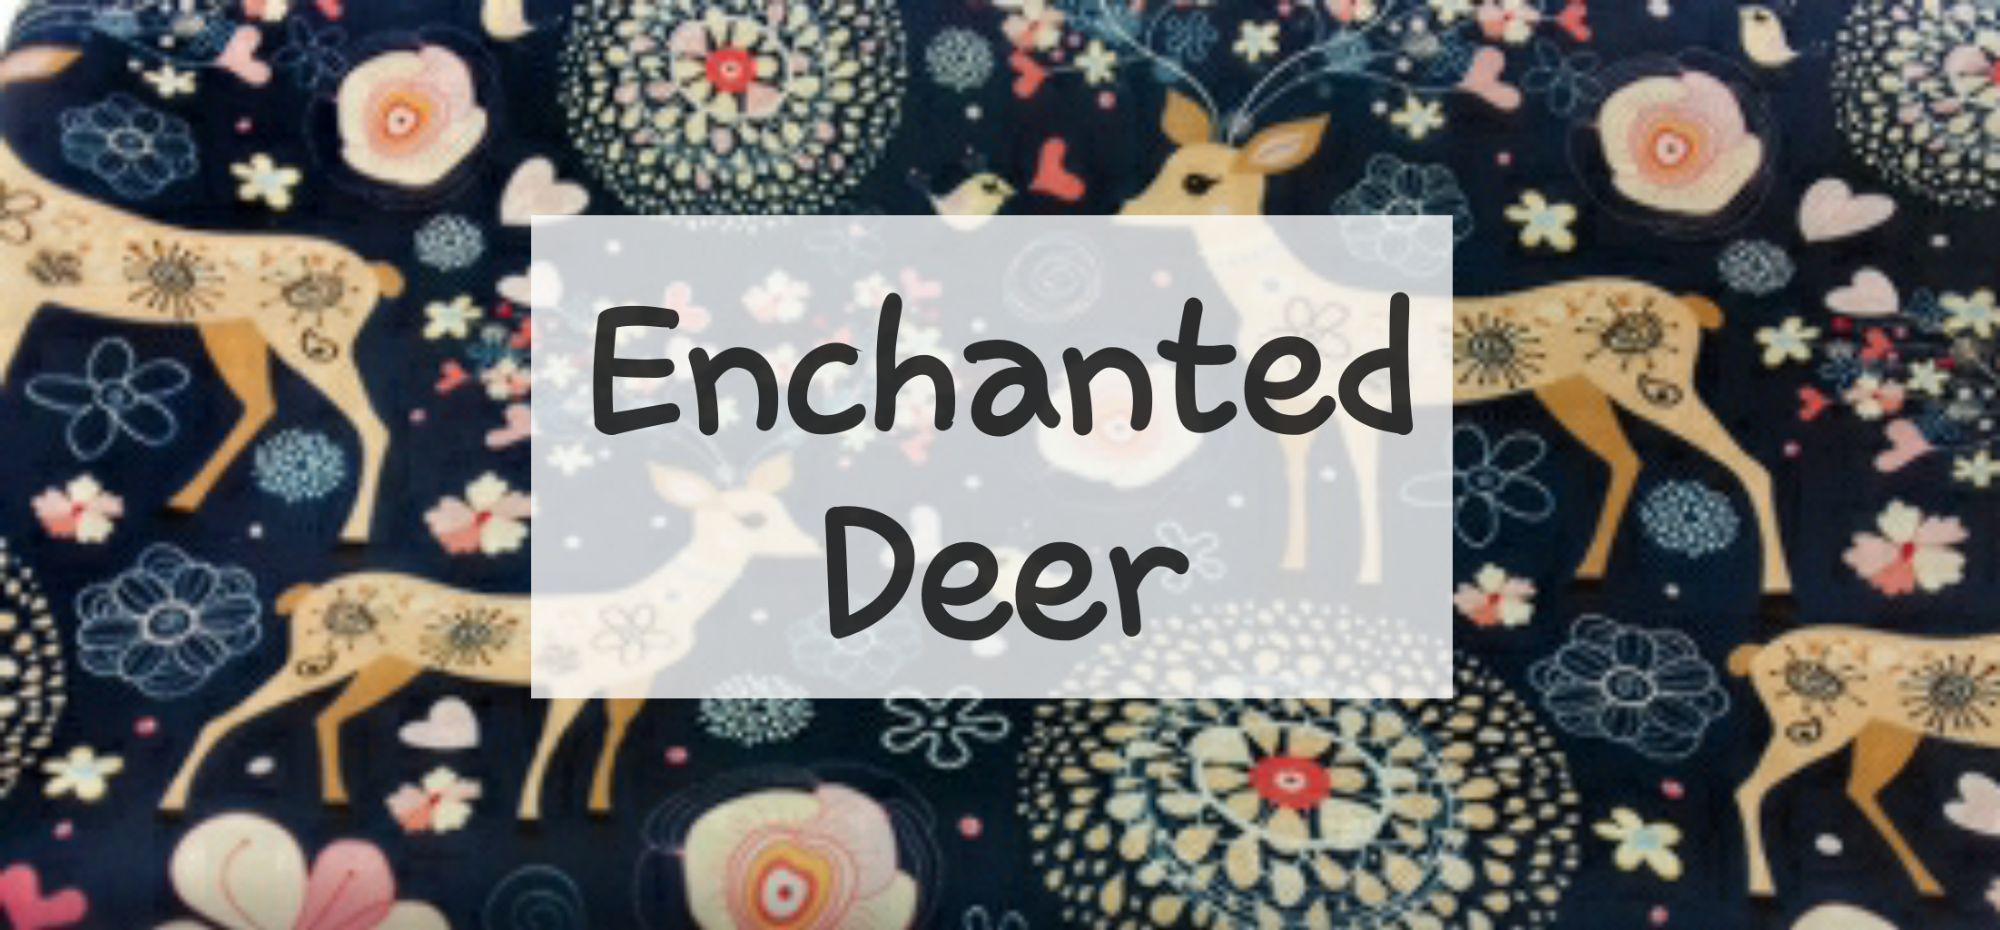 Enchanted Deer